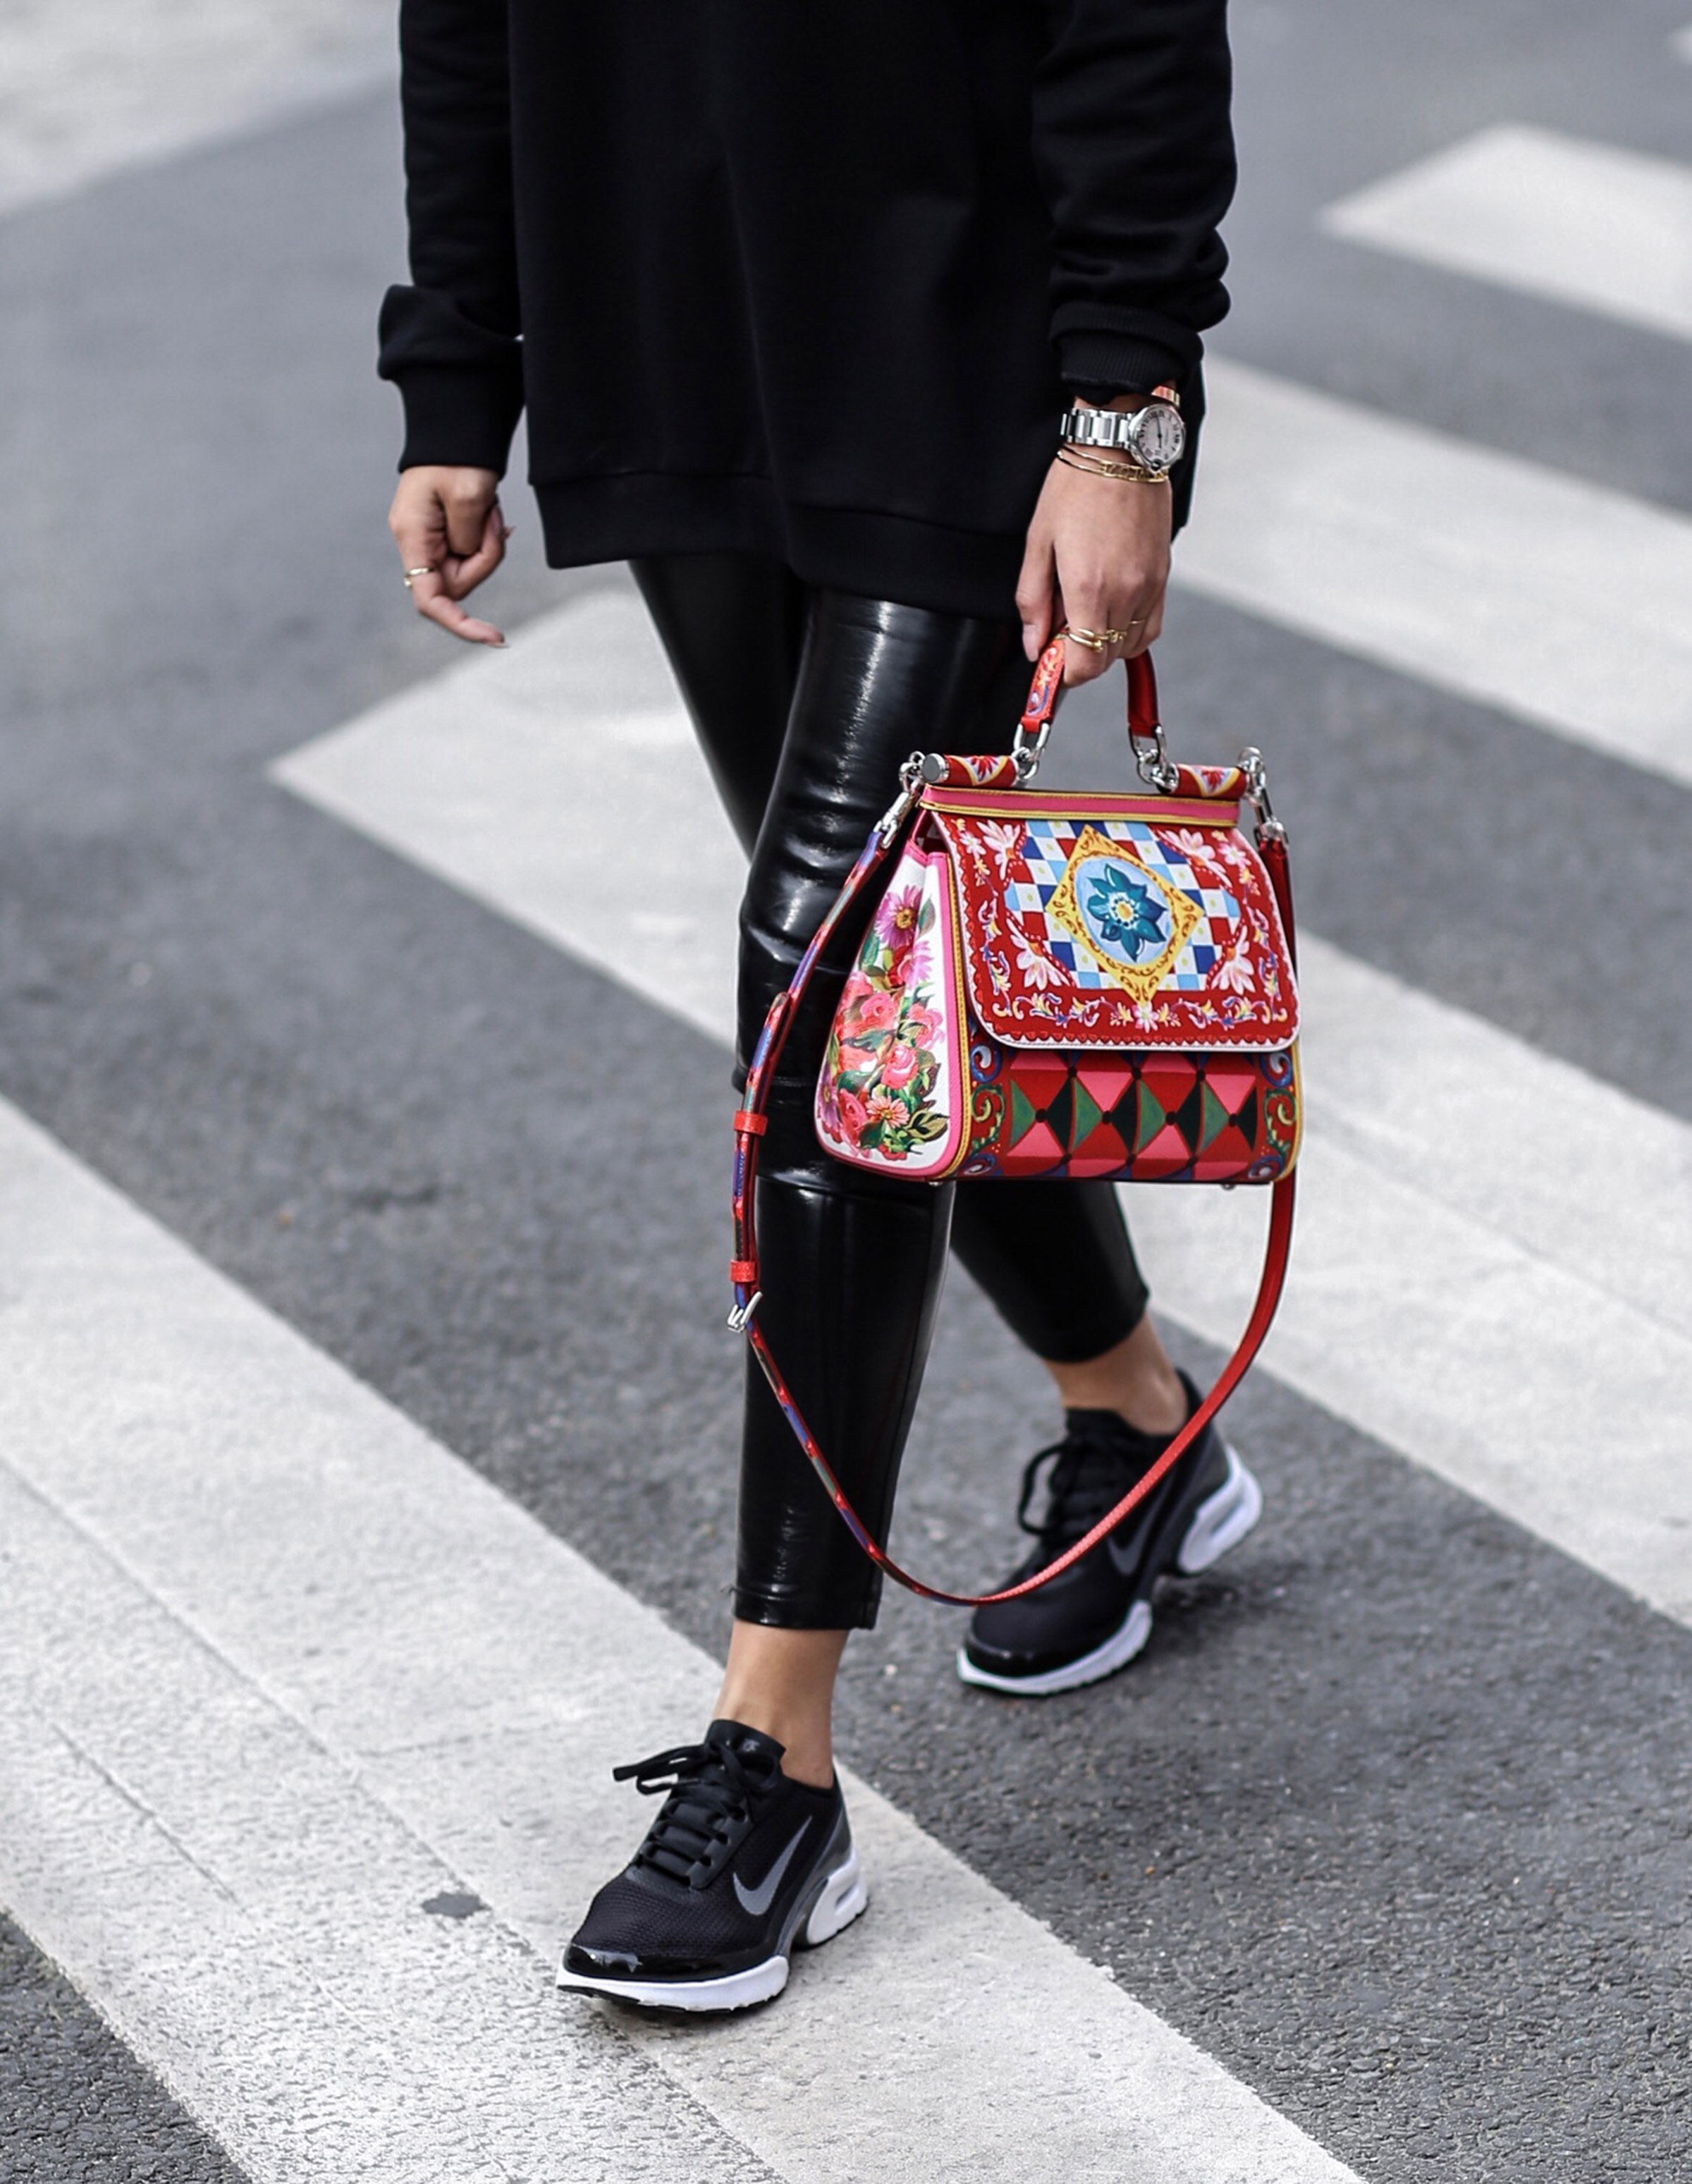 dolce_&_gabbana_bag_red